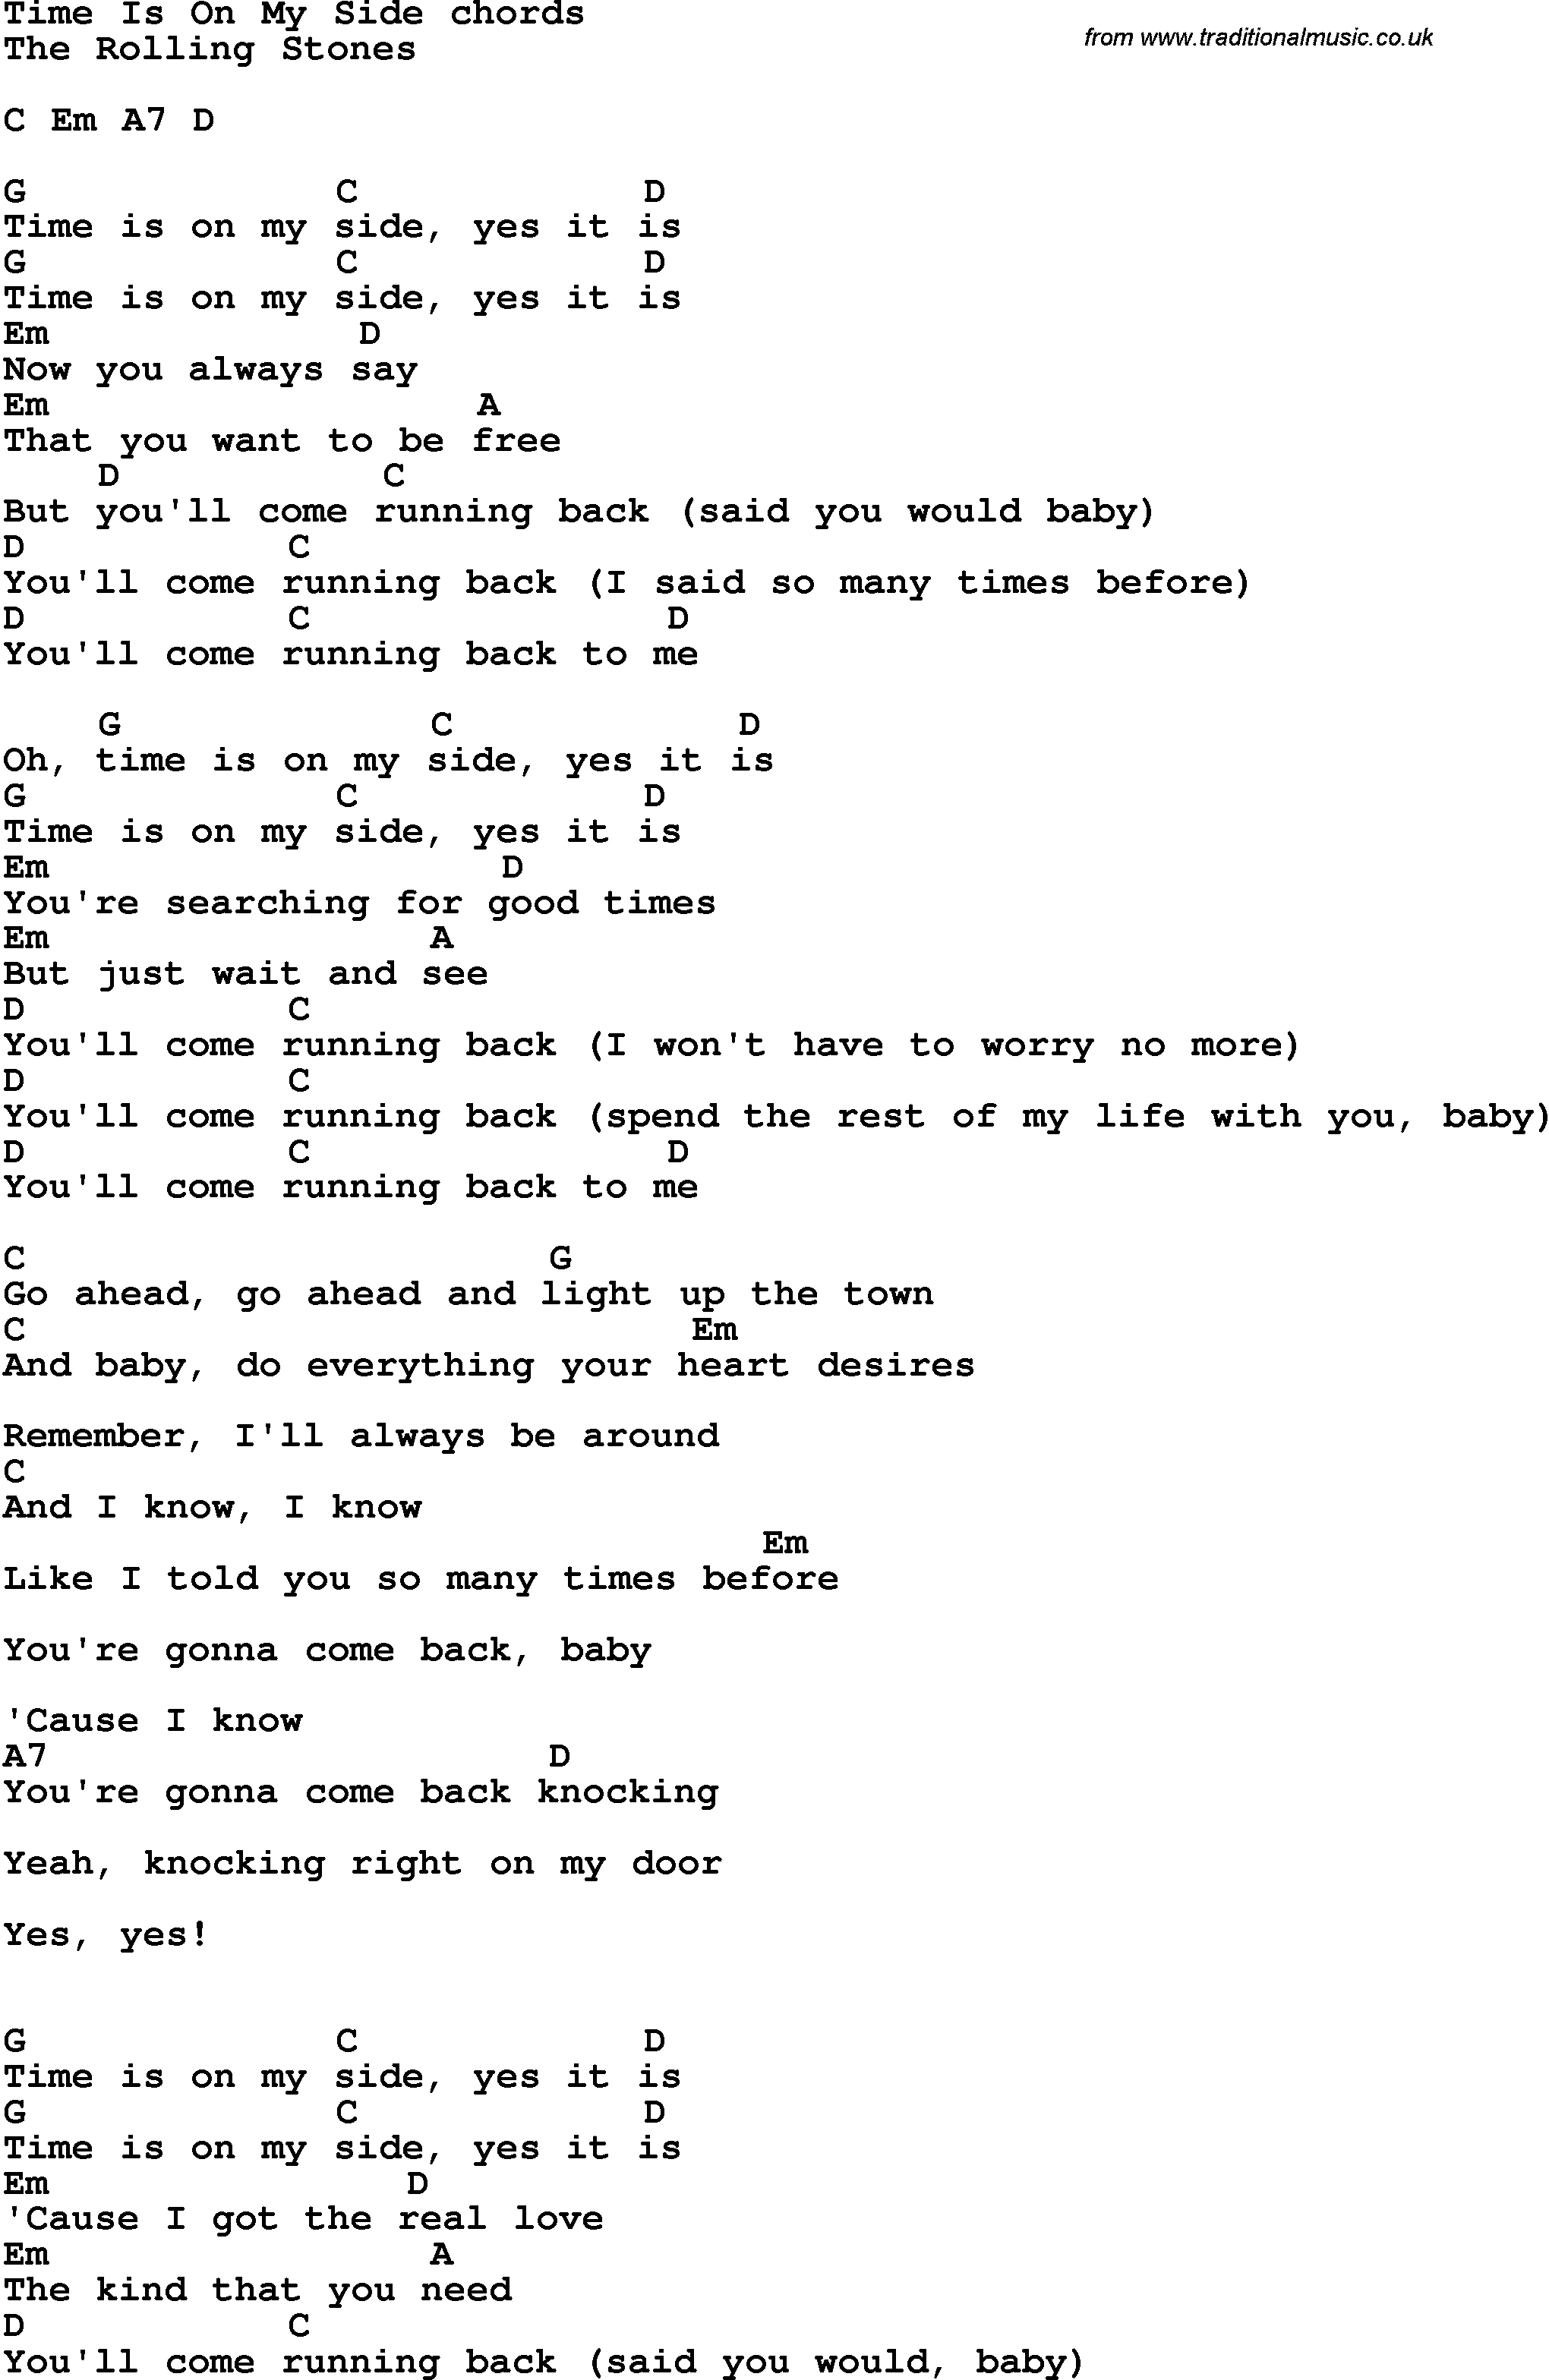 Side To Side Chords Song Lyrics With Guitar Chords For Time Is On My Side